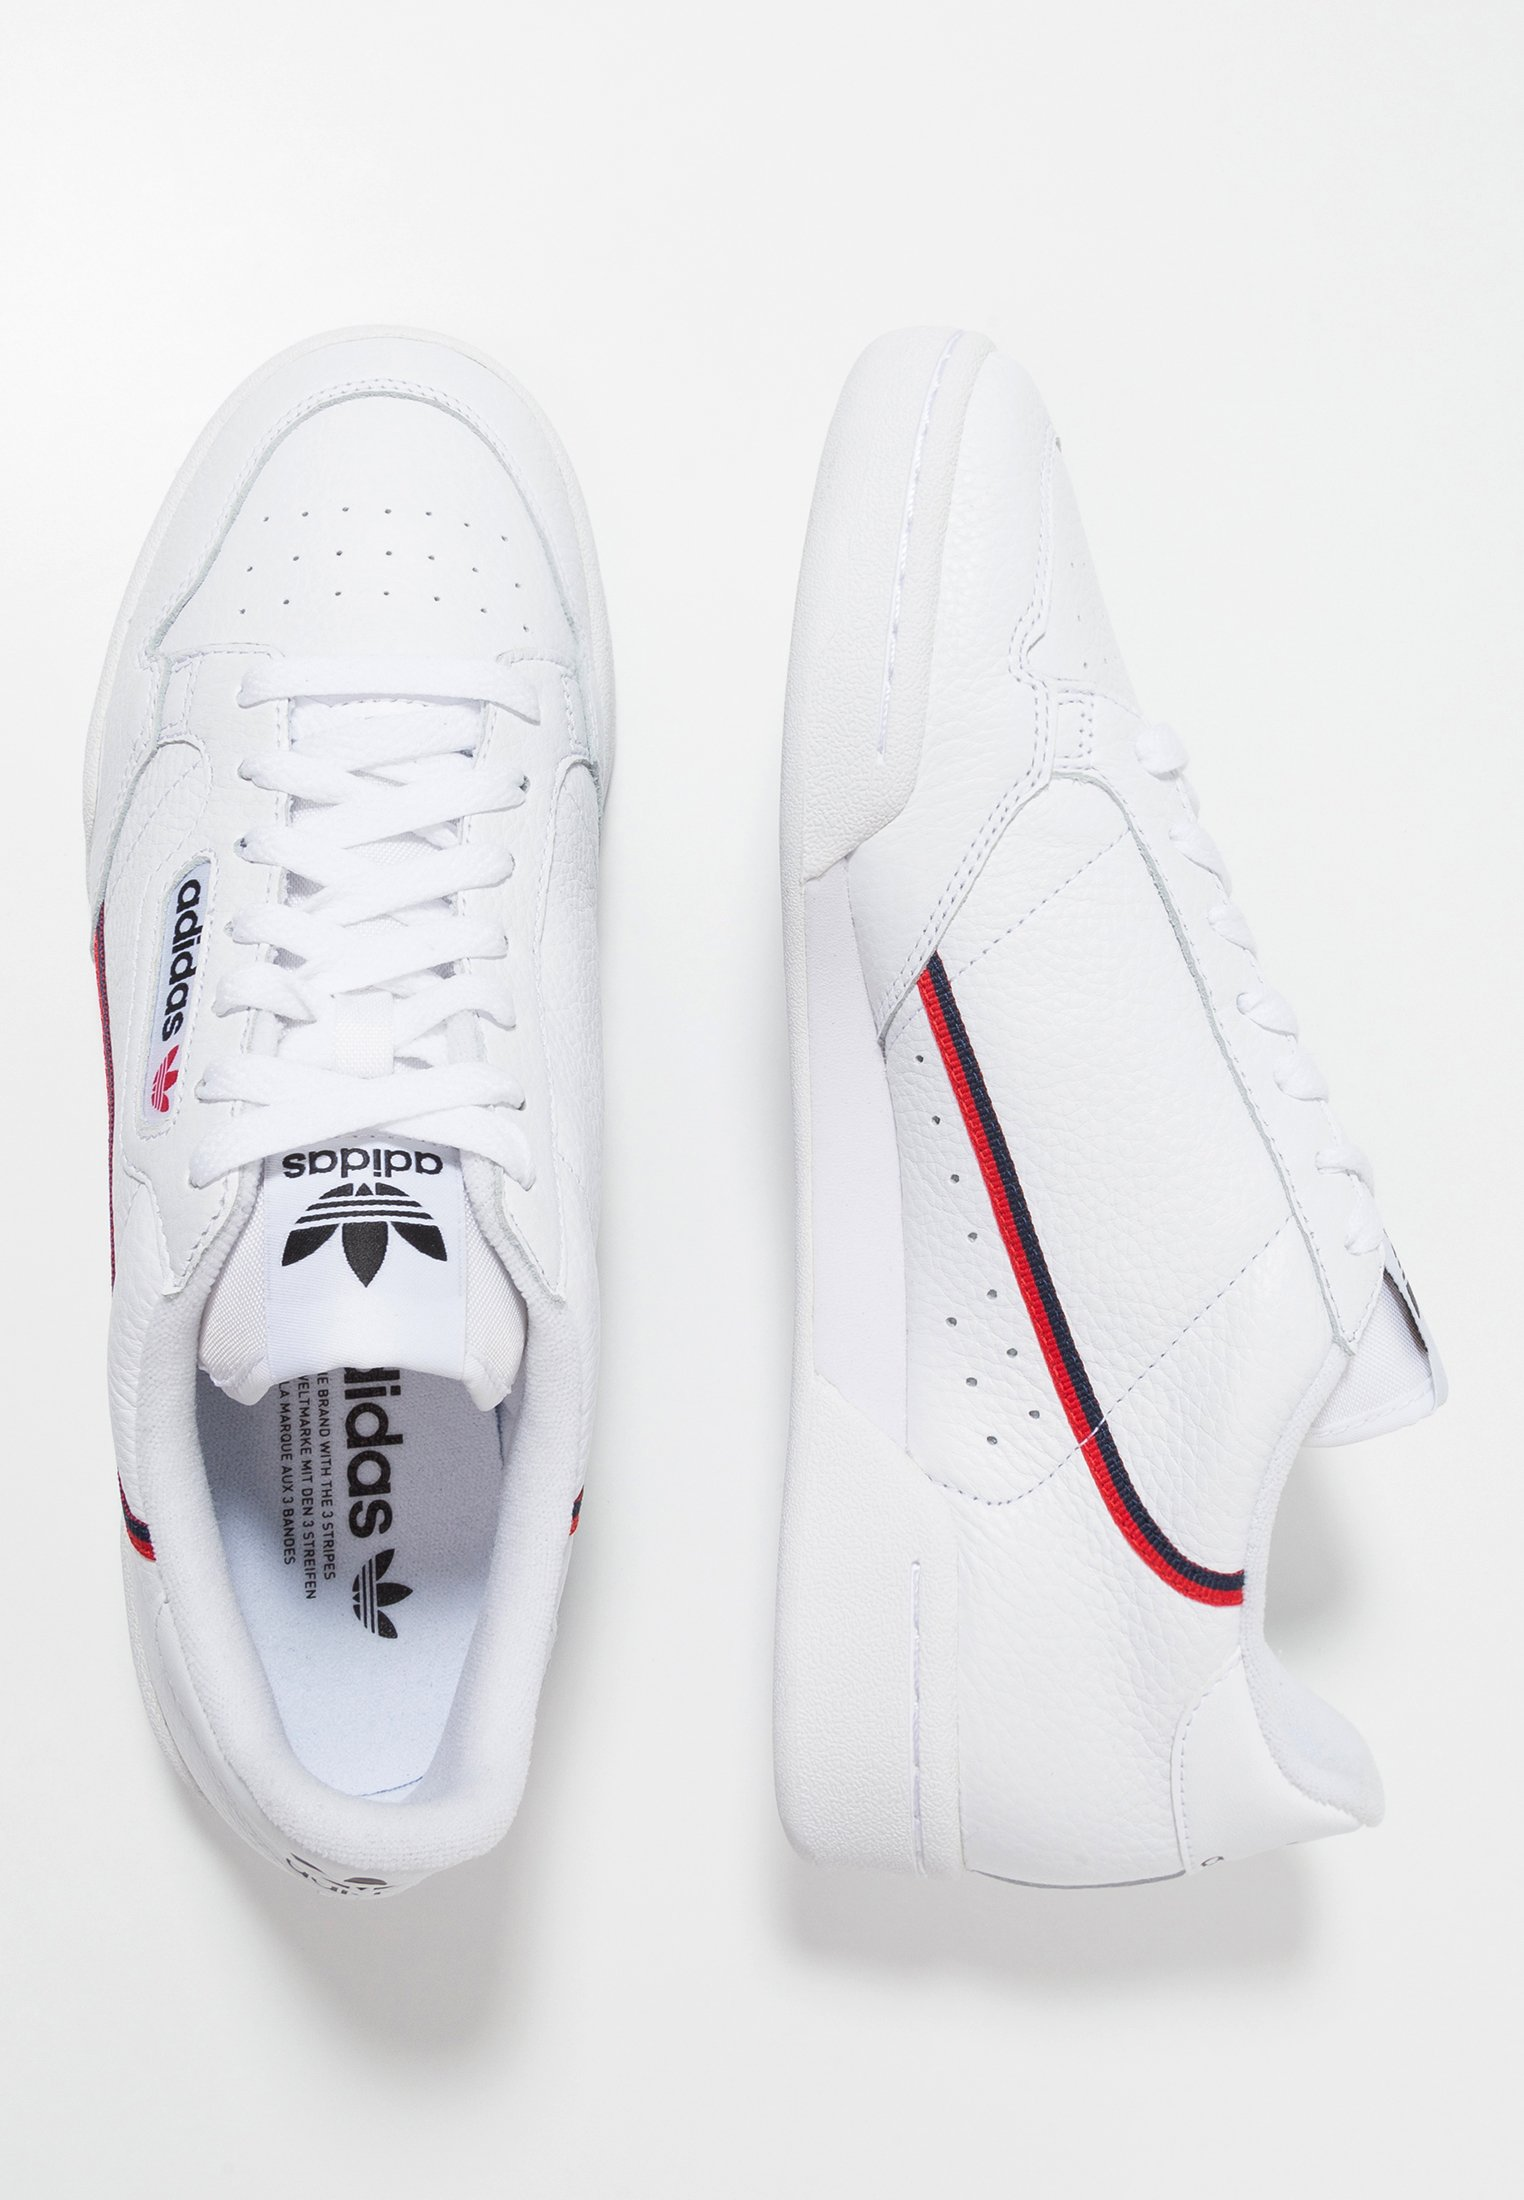 Adidas Originals Continental 80 Skateboard Shoes - Baskets Basses Footwear White/scarlet/collegiate Navy